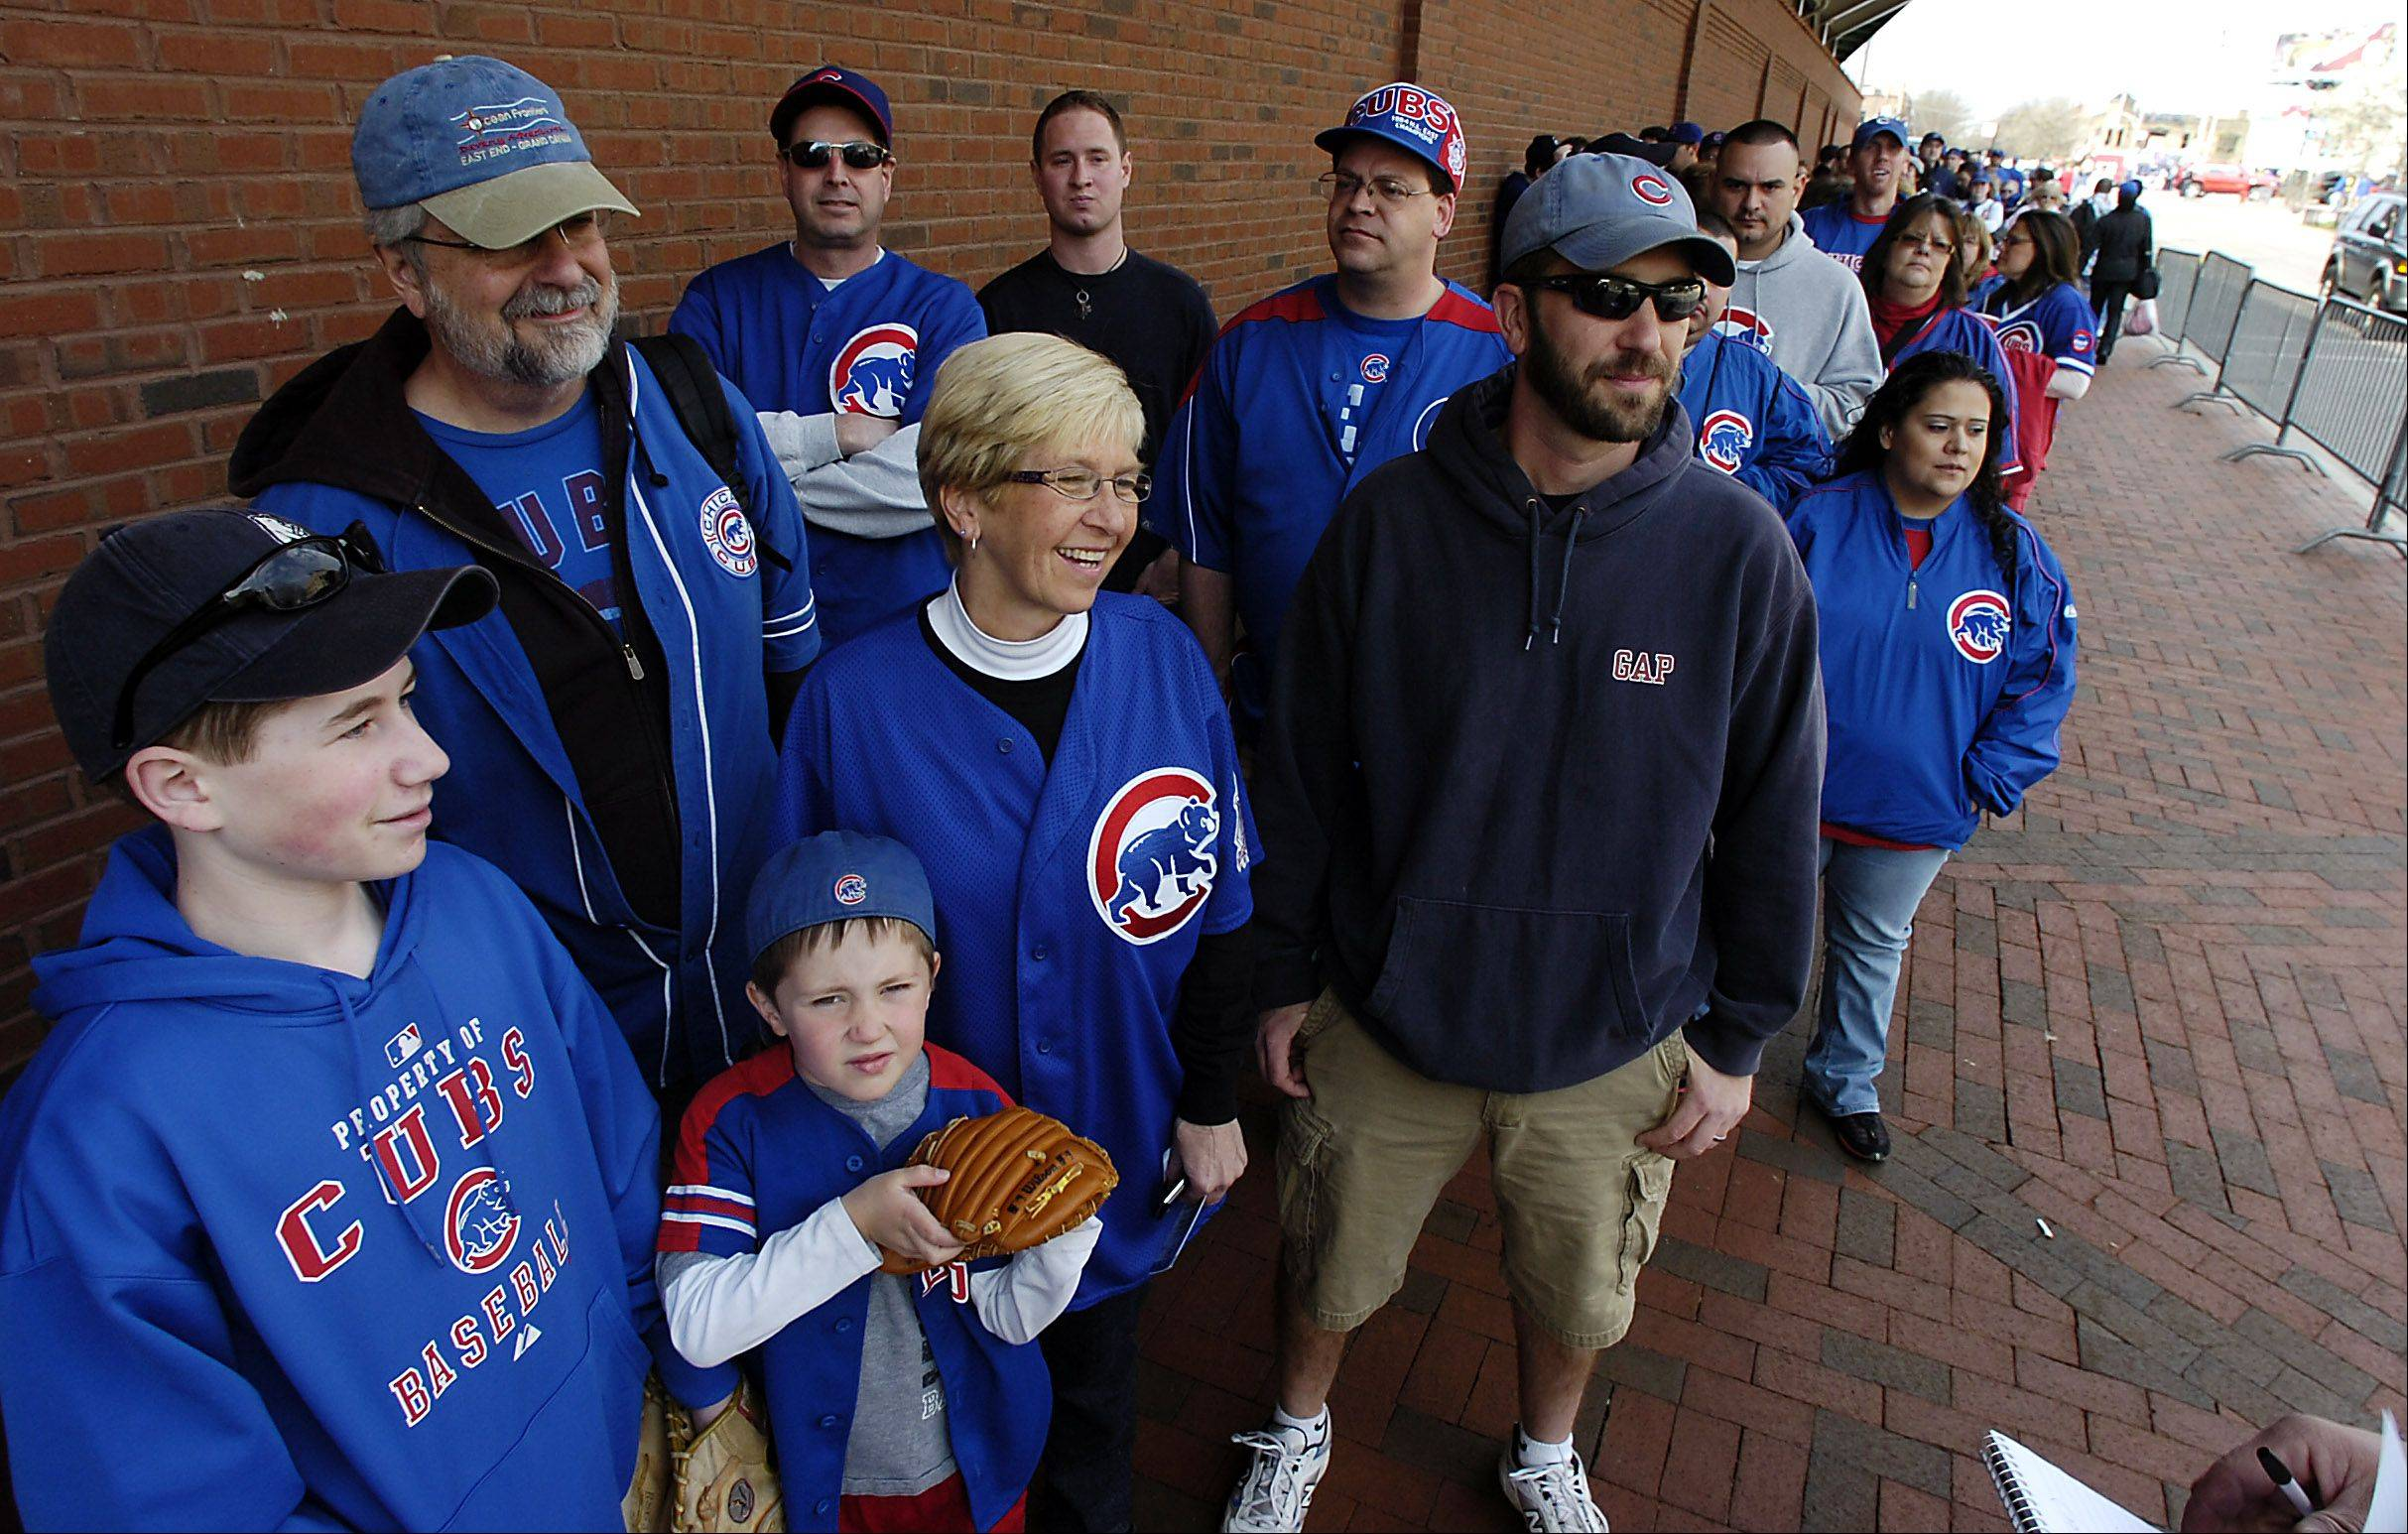 Waiting in line for the usual bleacher seats on Opening Day 2010, friend Kevin Riemer, 14, left, of Wheaton, hangs with Mike and Debra Hruby, their son, Sean, right of Geneva, and Sean's 5-year-old son, Cal. All three generations of the Hruby family will be at today's opener at Wrigley Field, which marks the 28th consecutive year for Debra and Sean.